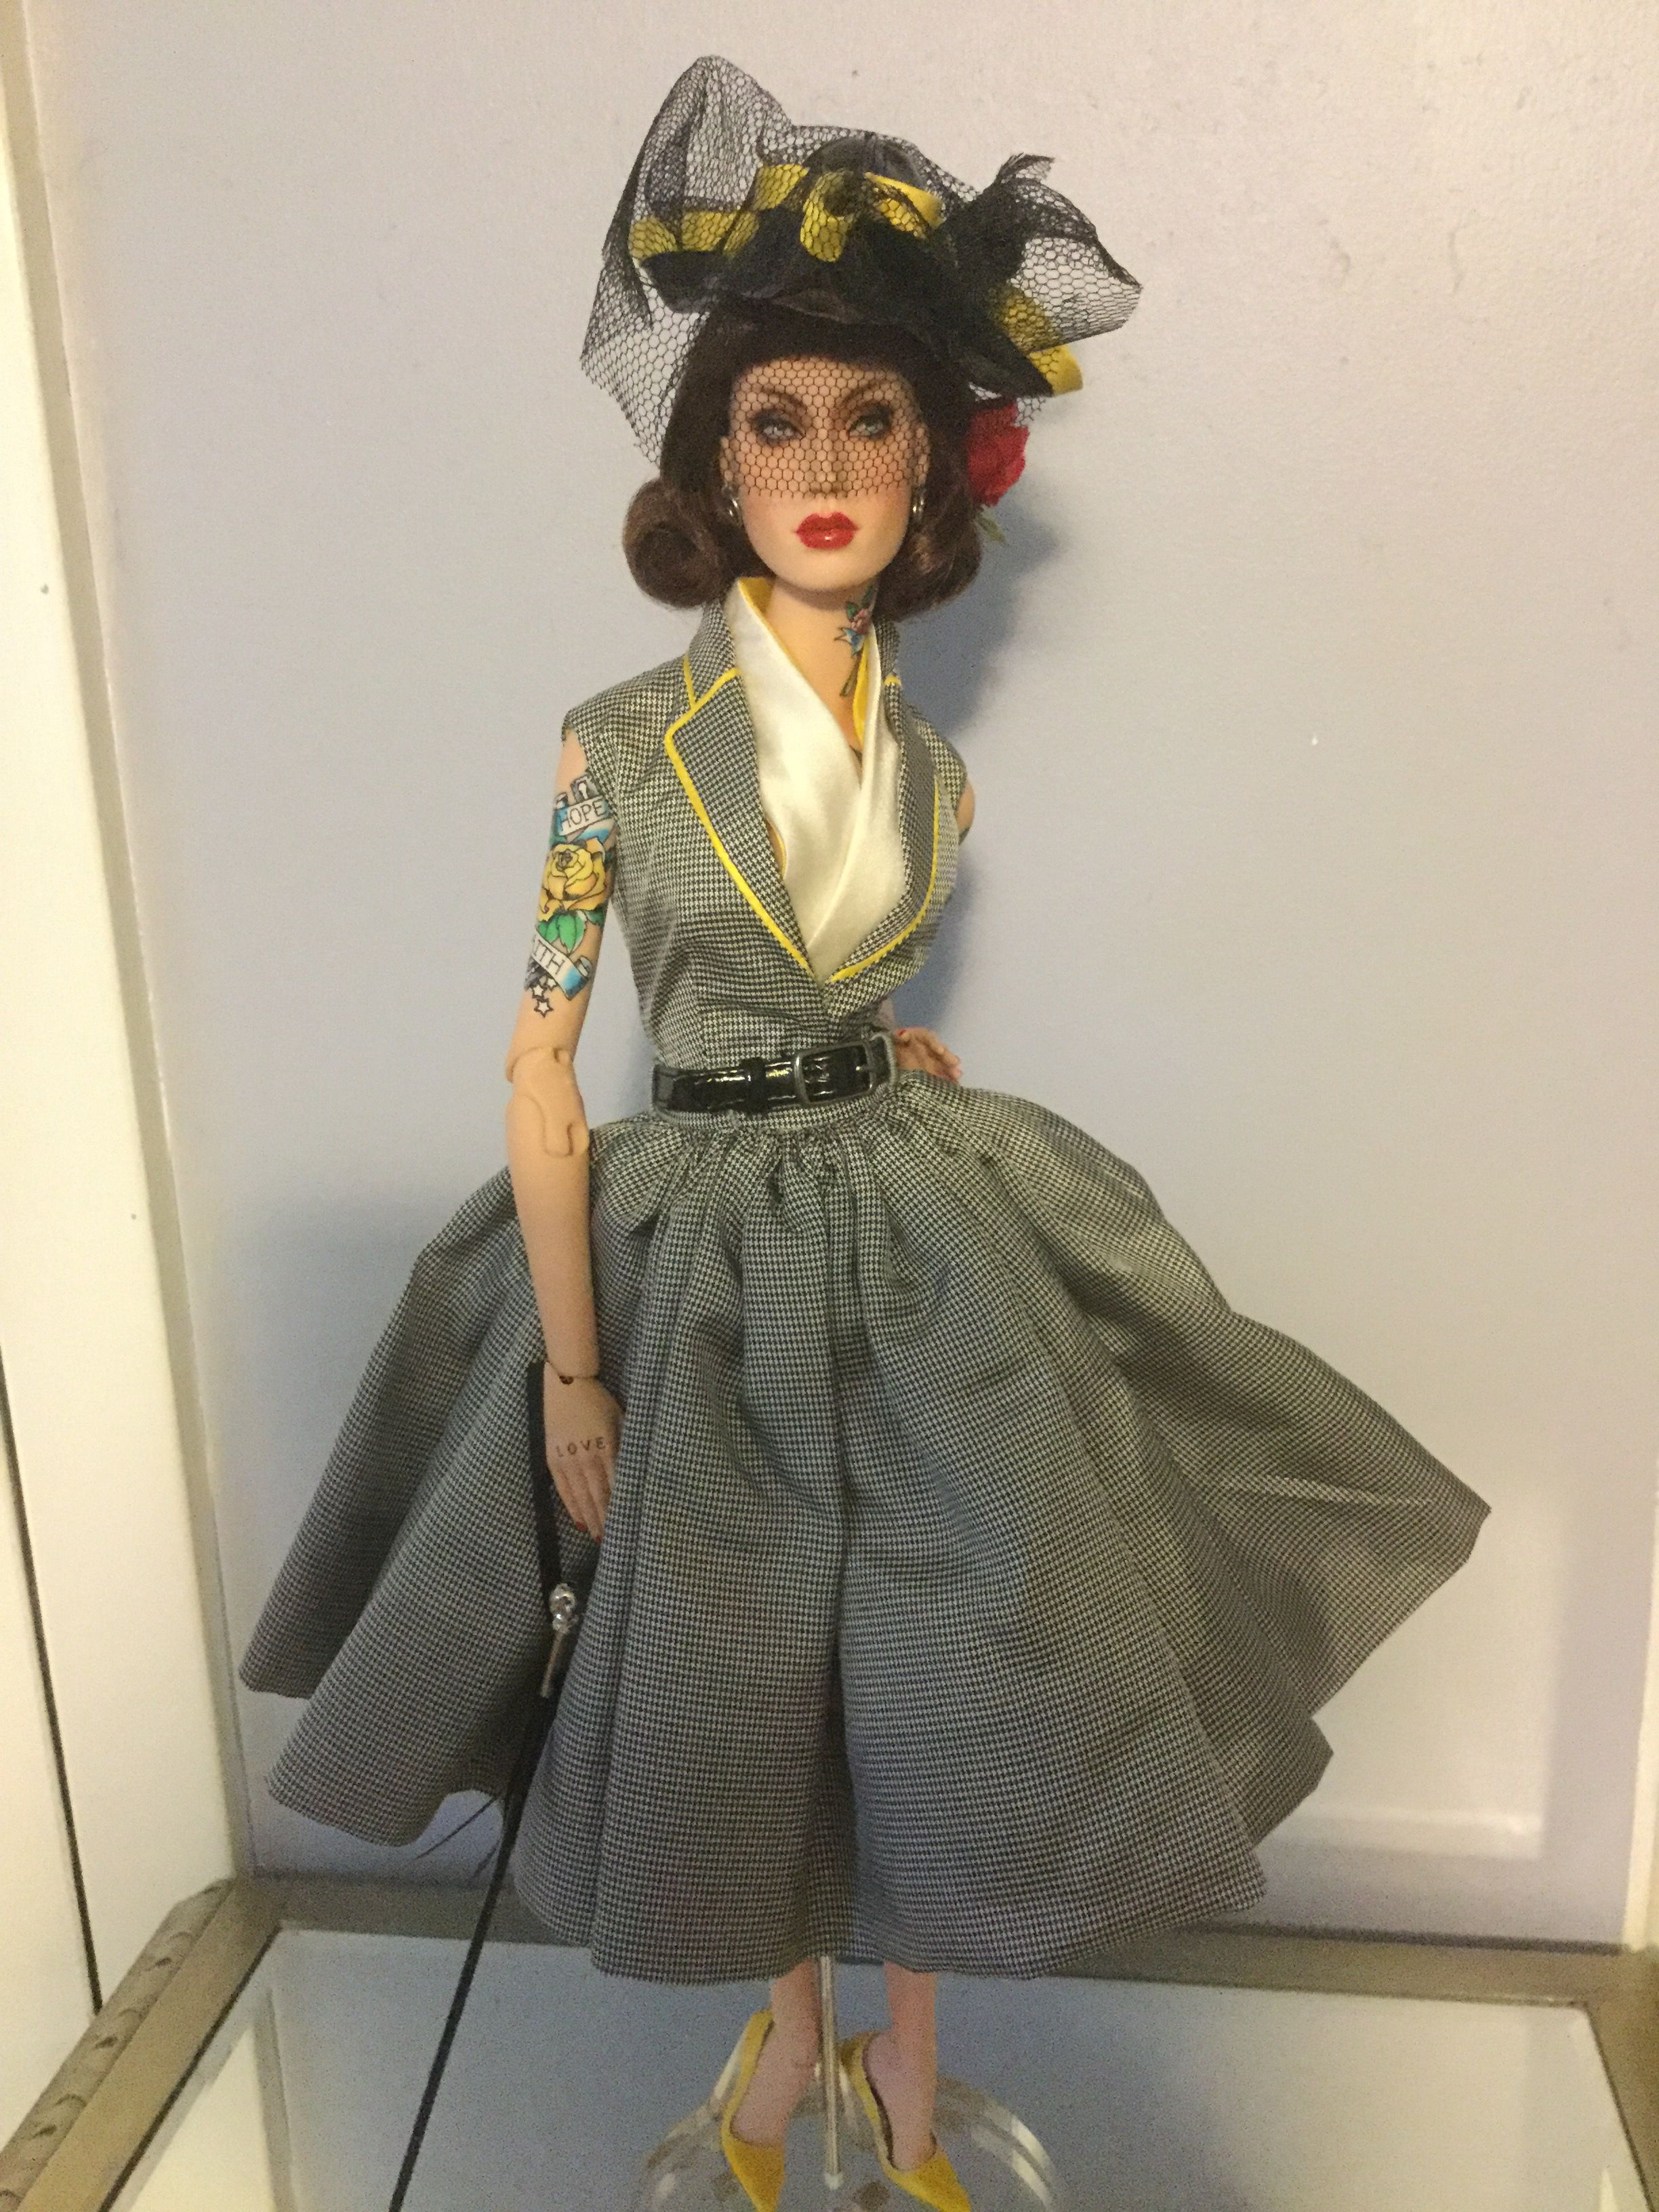 Pin on Fashion Royalty & Other Dolls